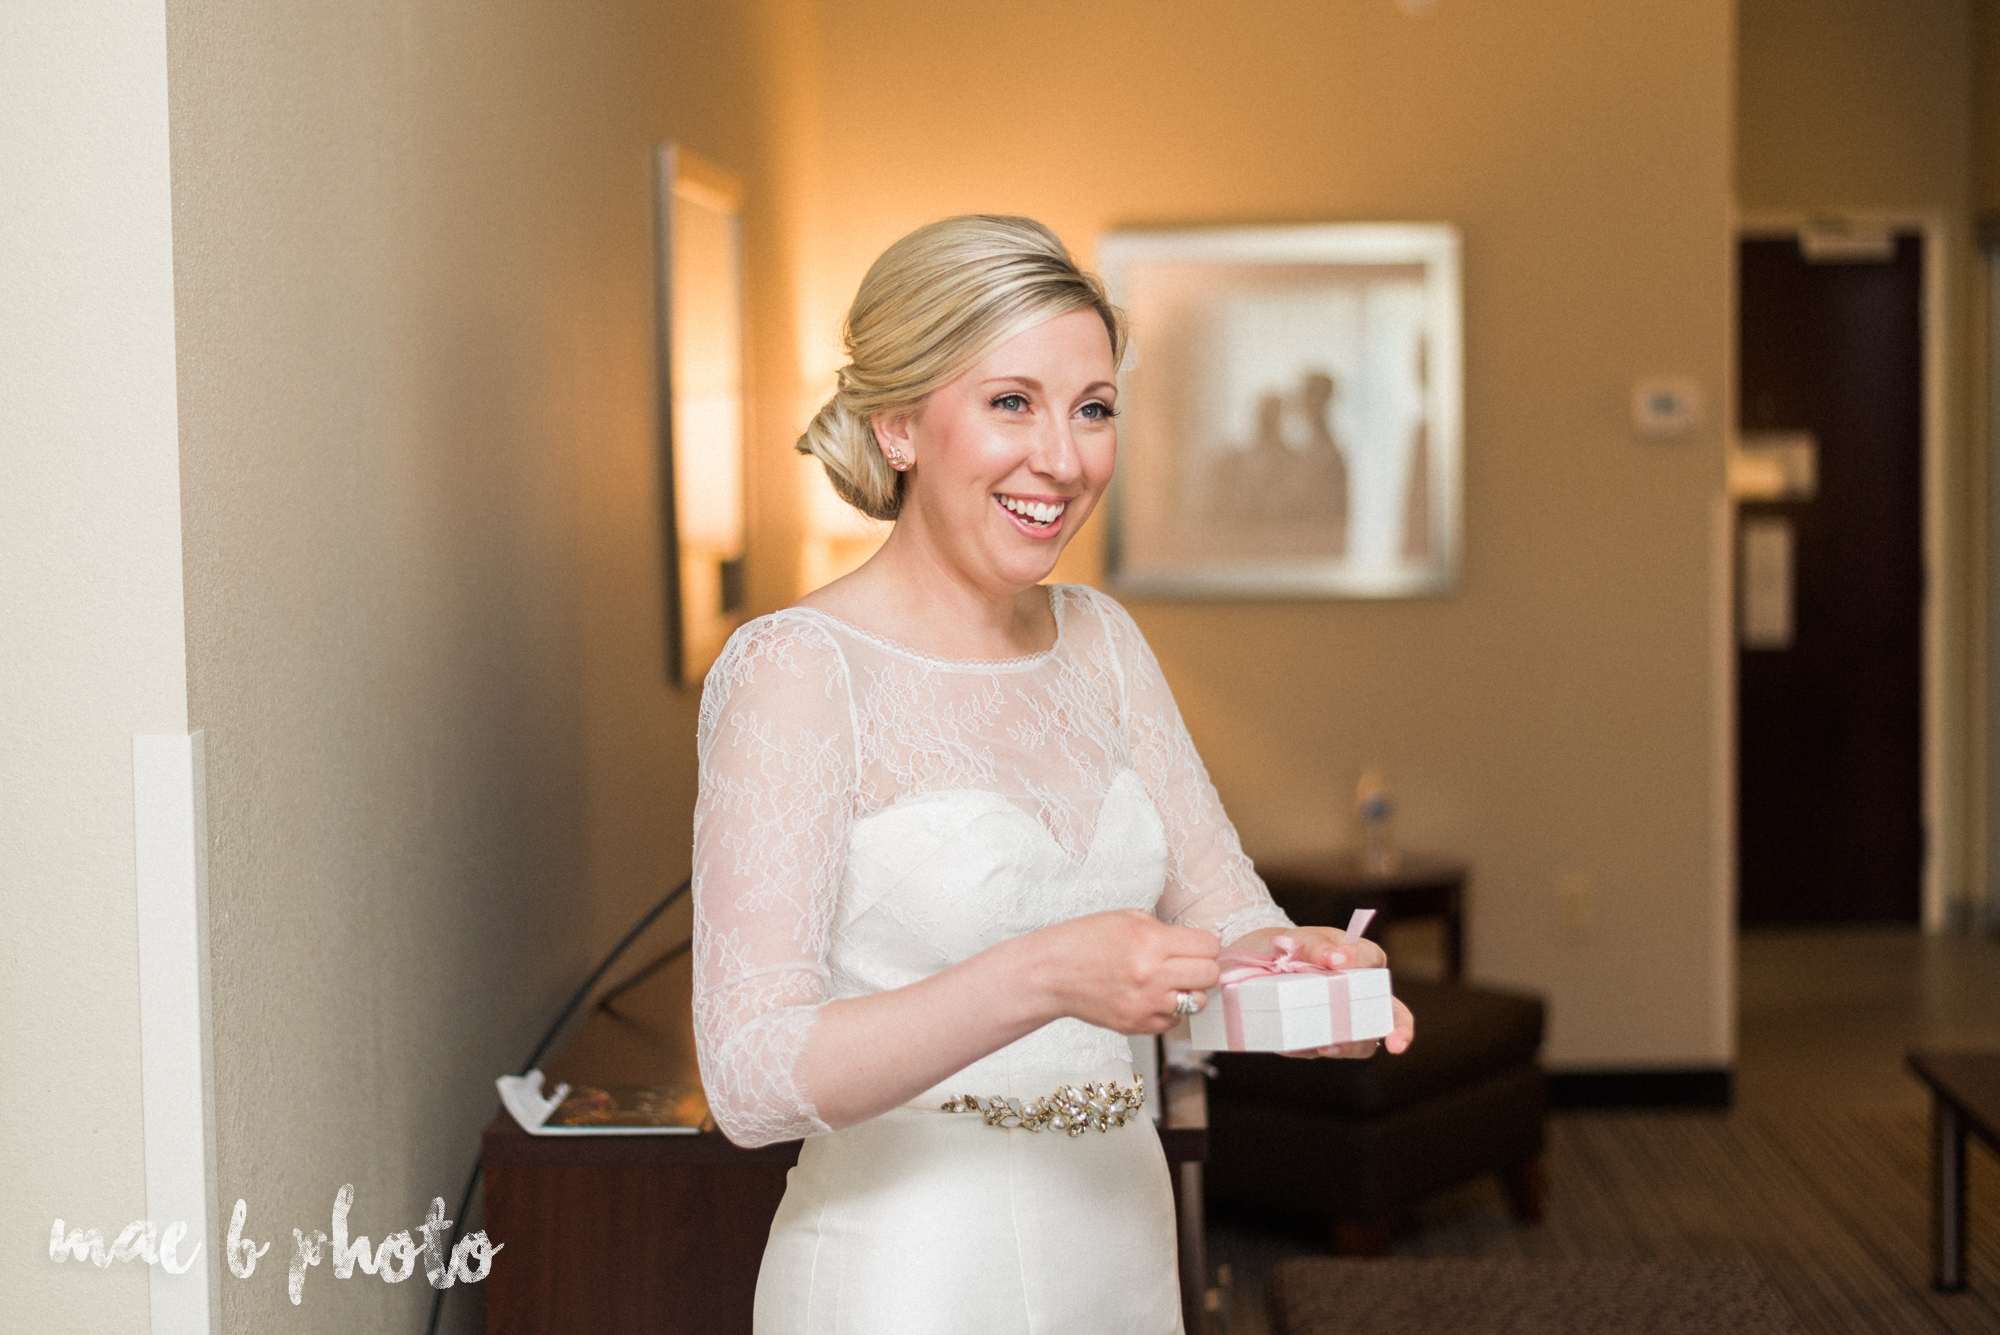 emily and michael's industrial chic summer country club wedding at the lake club in poland ohio photographed by cleveland wedding photographer mae b photo-45.jpg